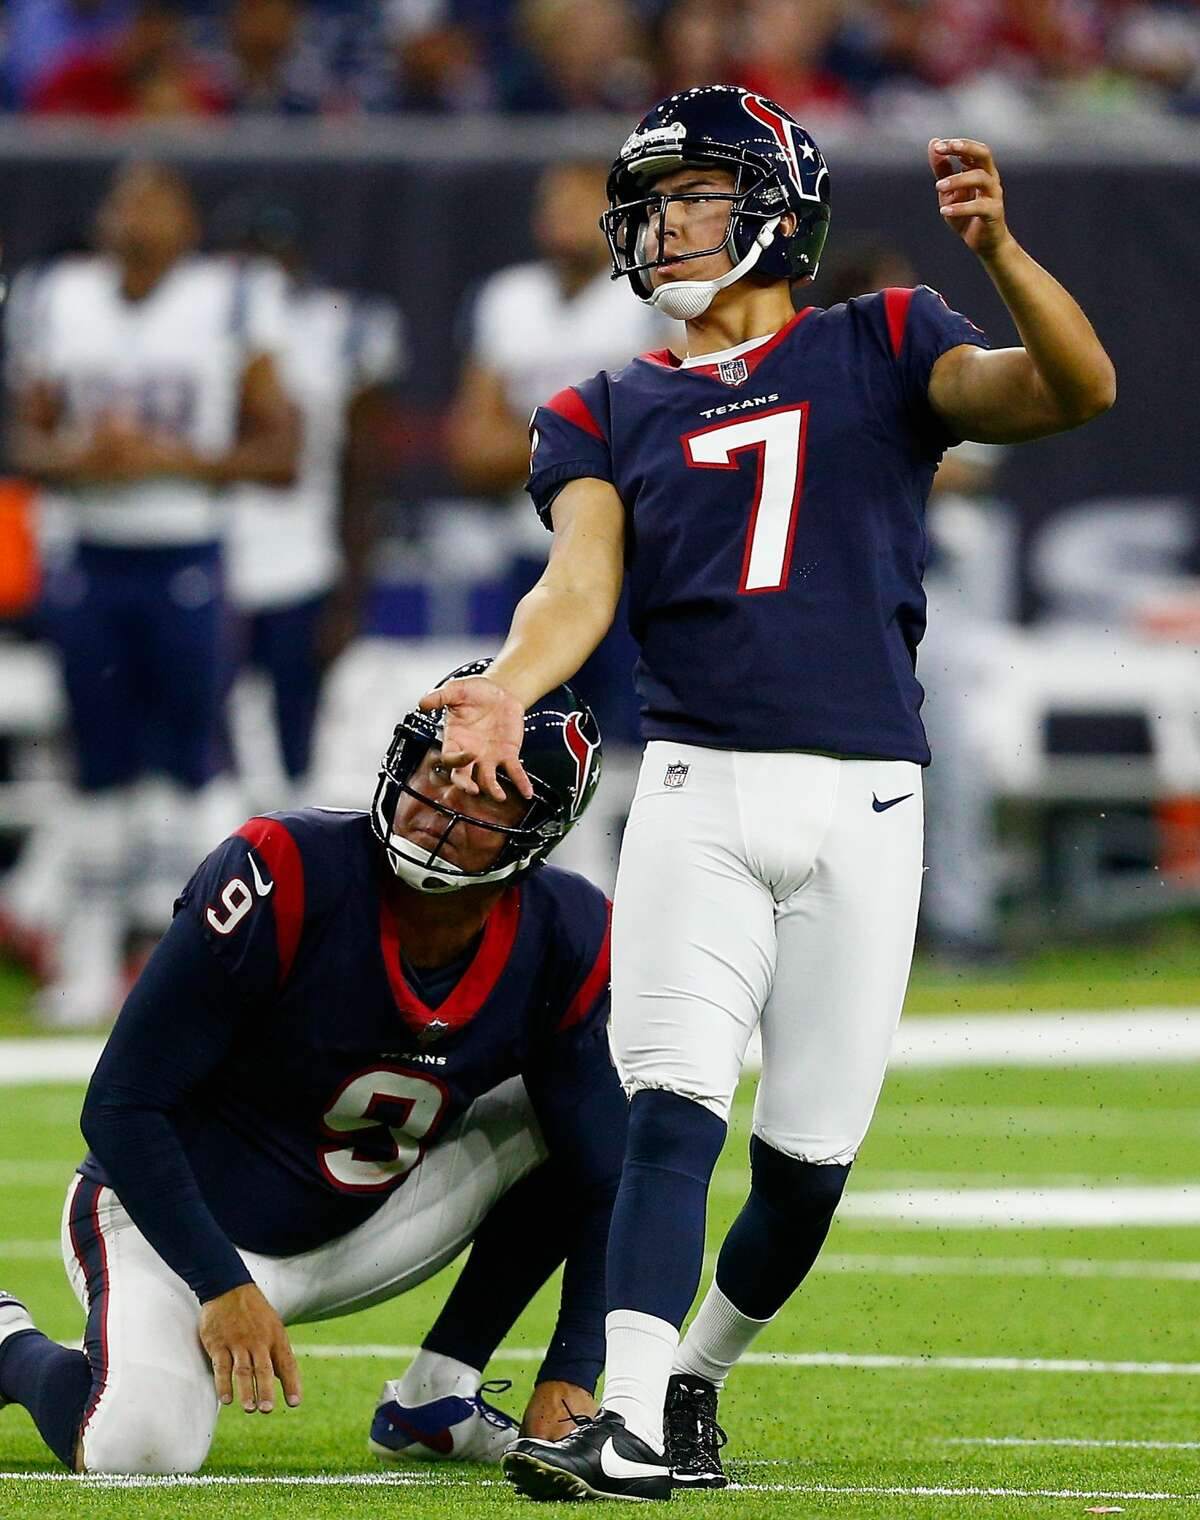 PREDICTION Texans 20, Jaguars 16 Defenses that finished first (Texans) and sixth last season (Jaguars) keep this from being a high-scoring game. Two Ka'imi Fairbairn field goals should be the difference.